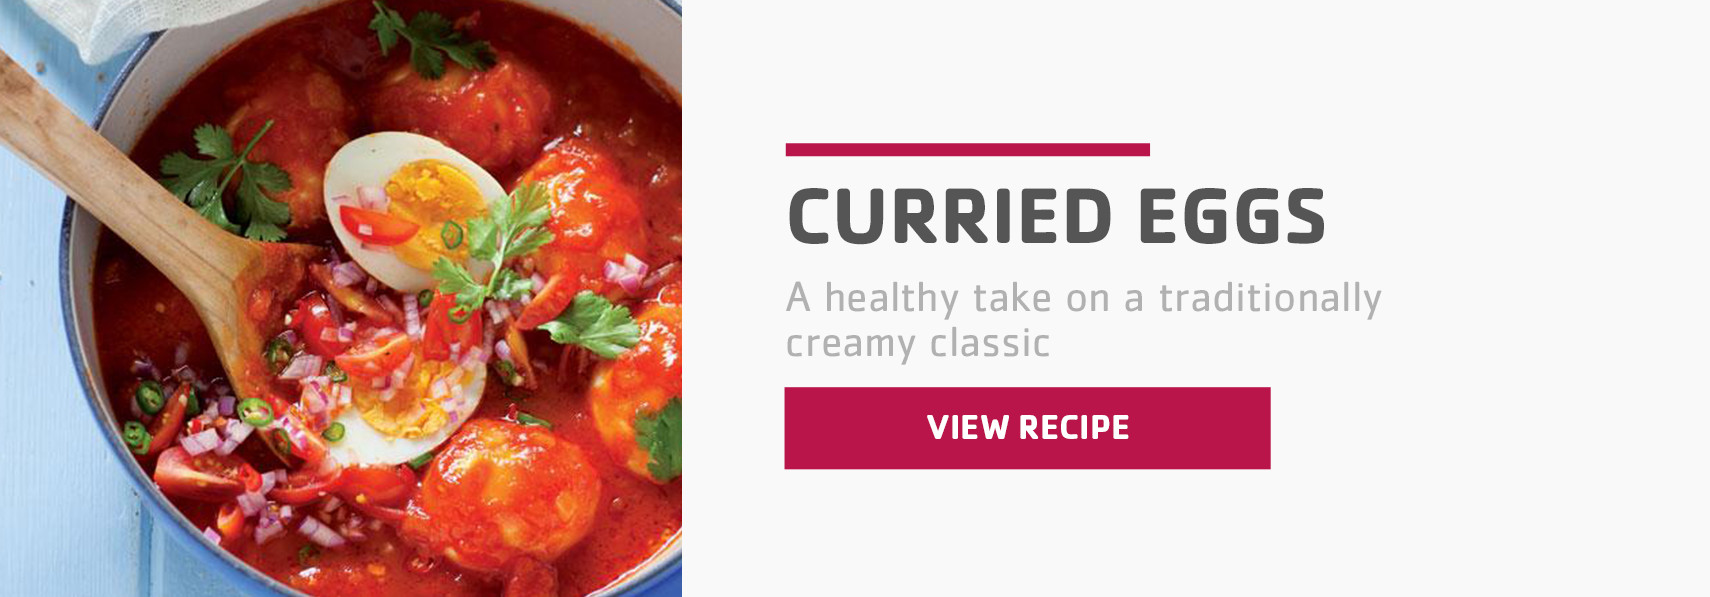 Curried Eggs listing page banner.jpg